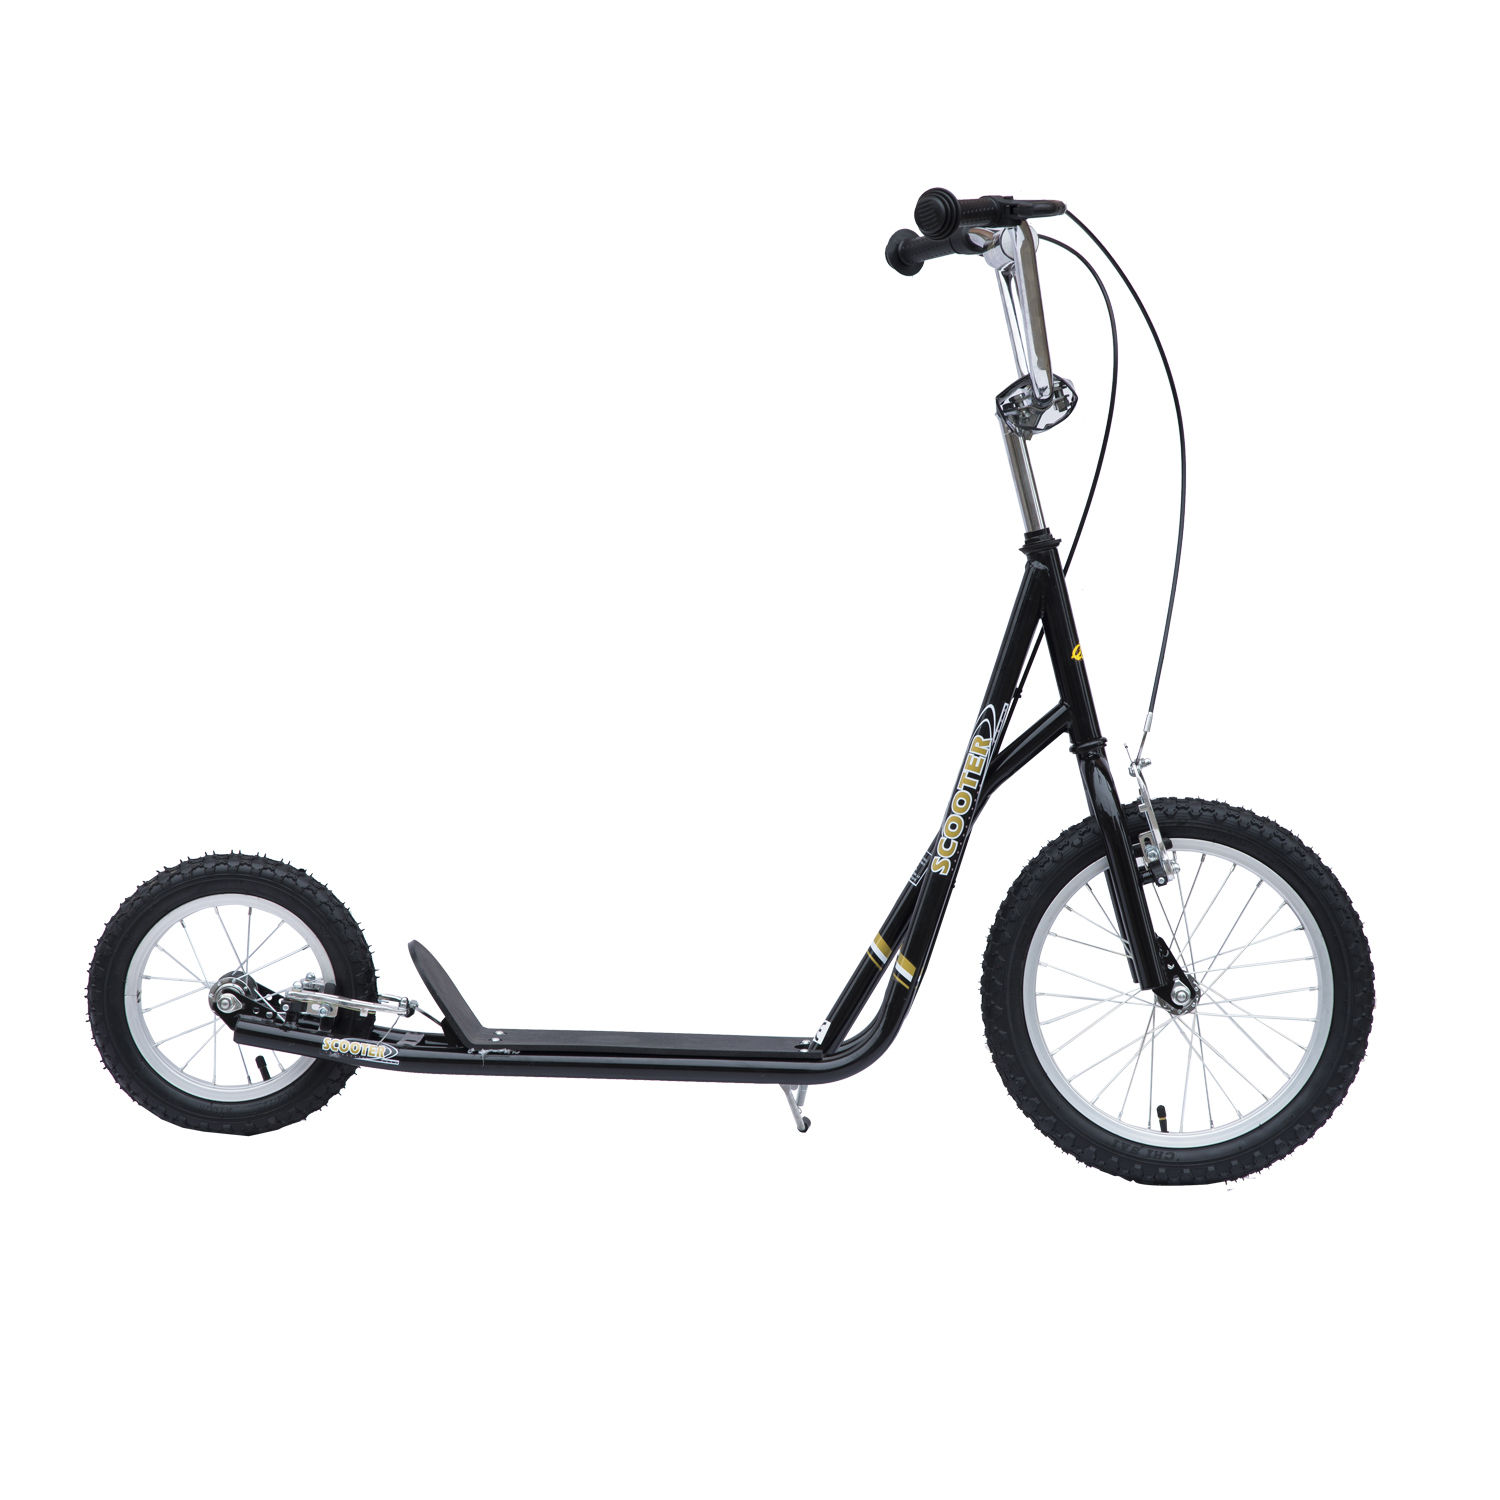 Adult-Teen-Push-Stunt-Kick-Scooter-Kids-Children-Bike-Bicycle-Ride-Street-New thumbnail 5